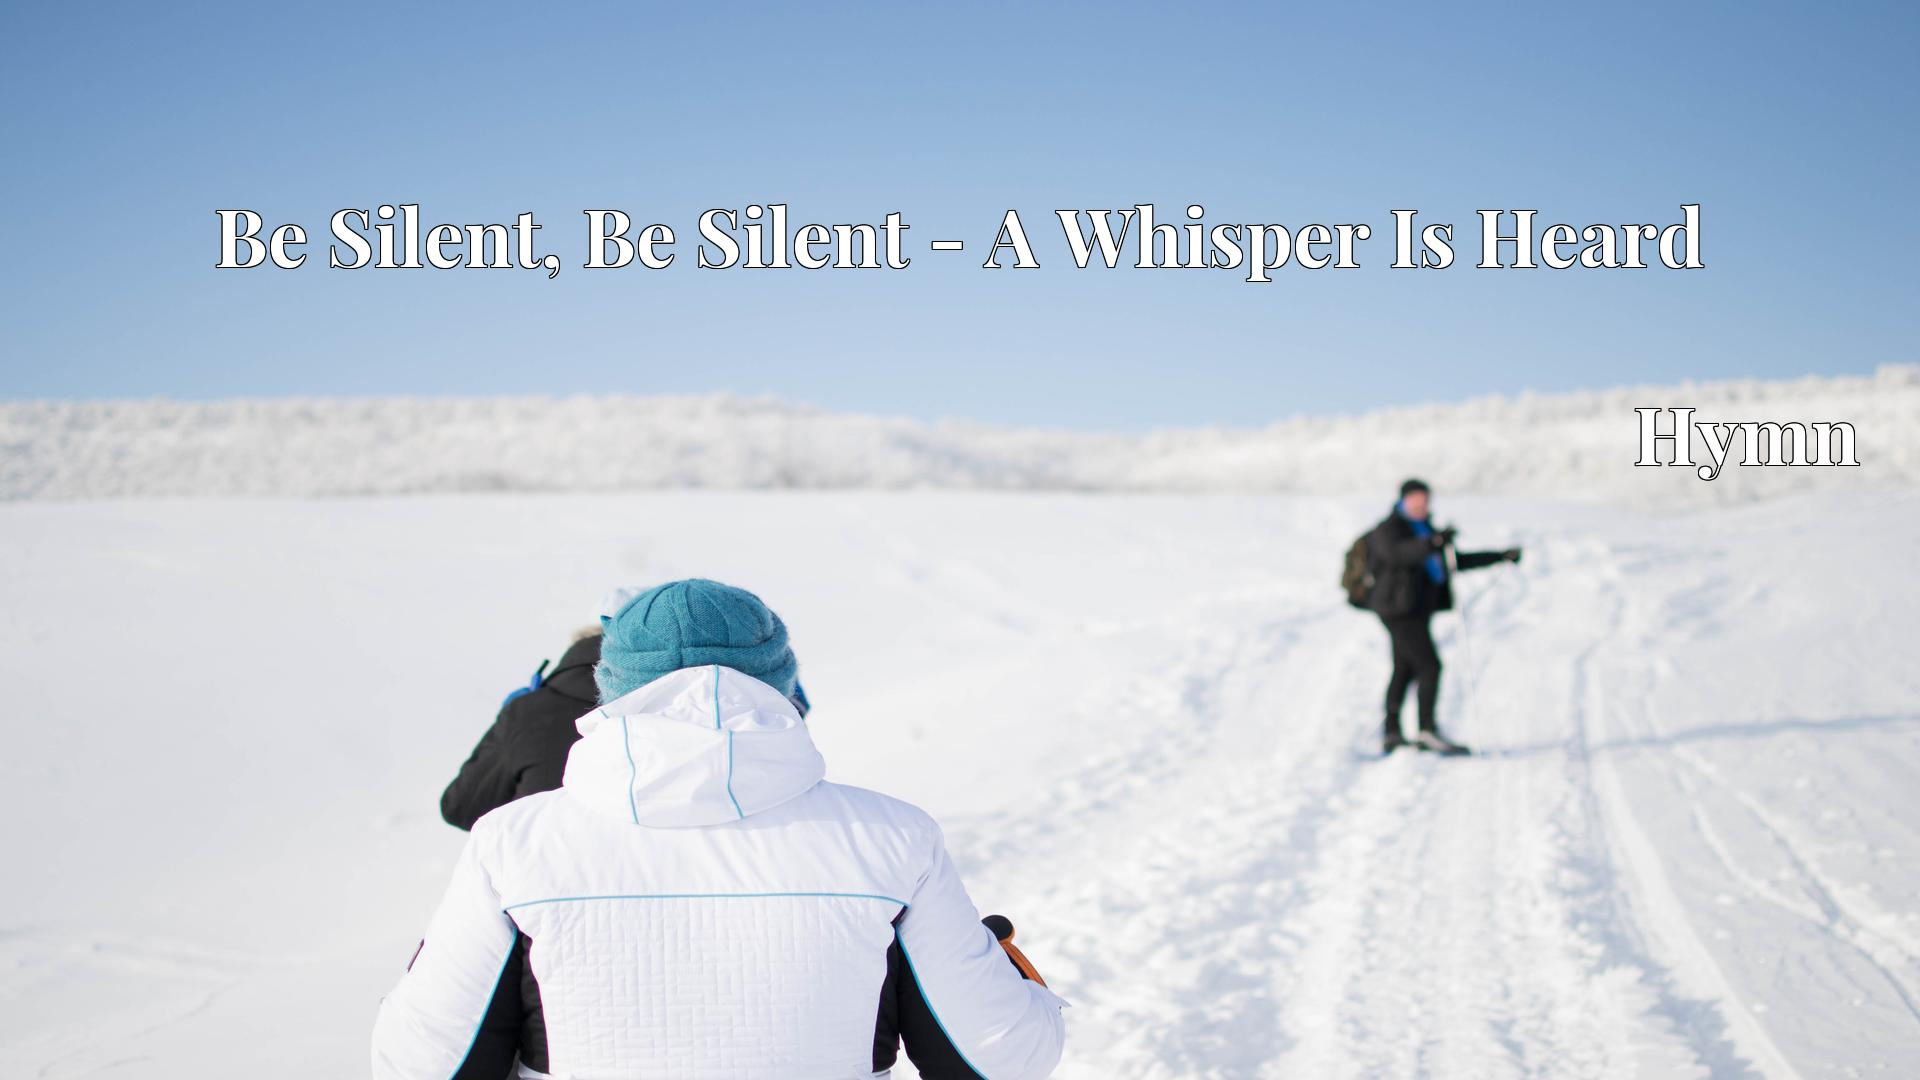 Be Silent, Be Silent - A Whisper Is Heard Hymn